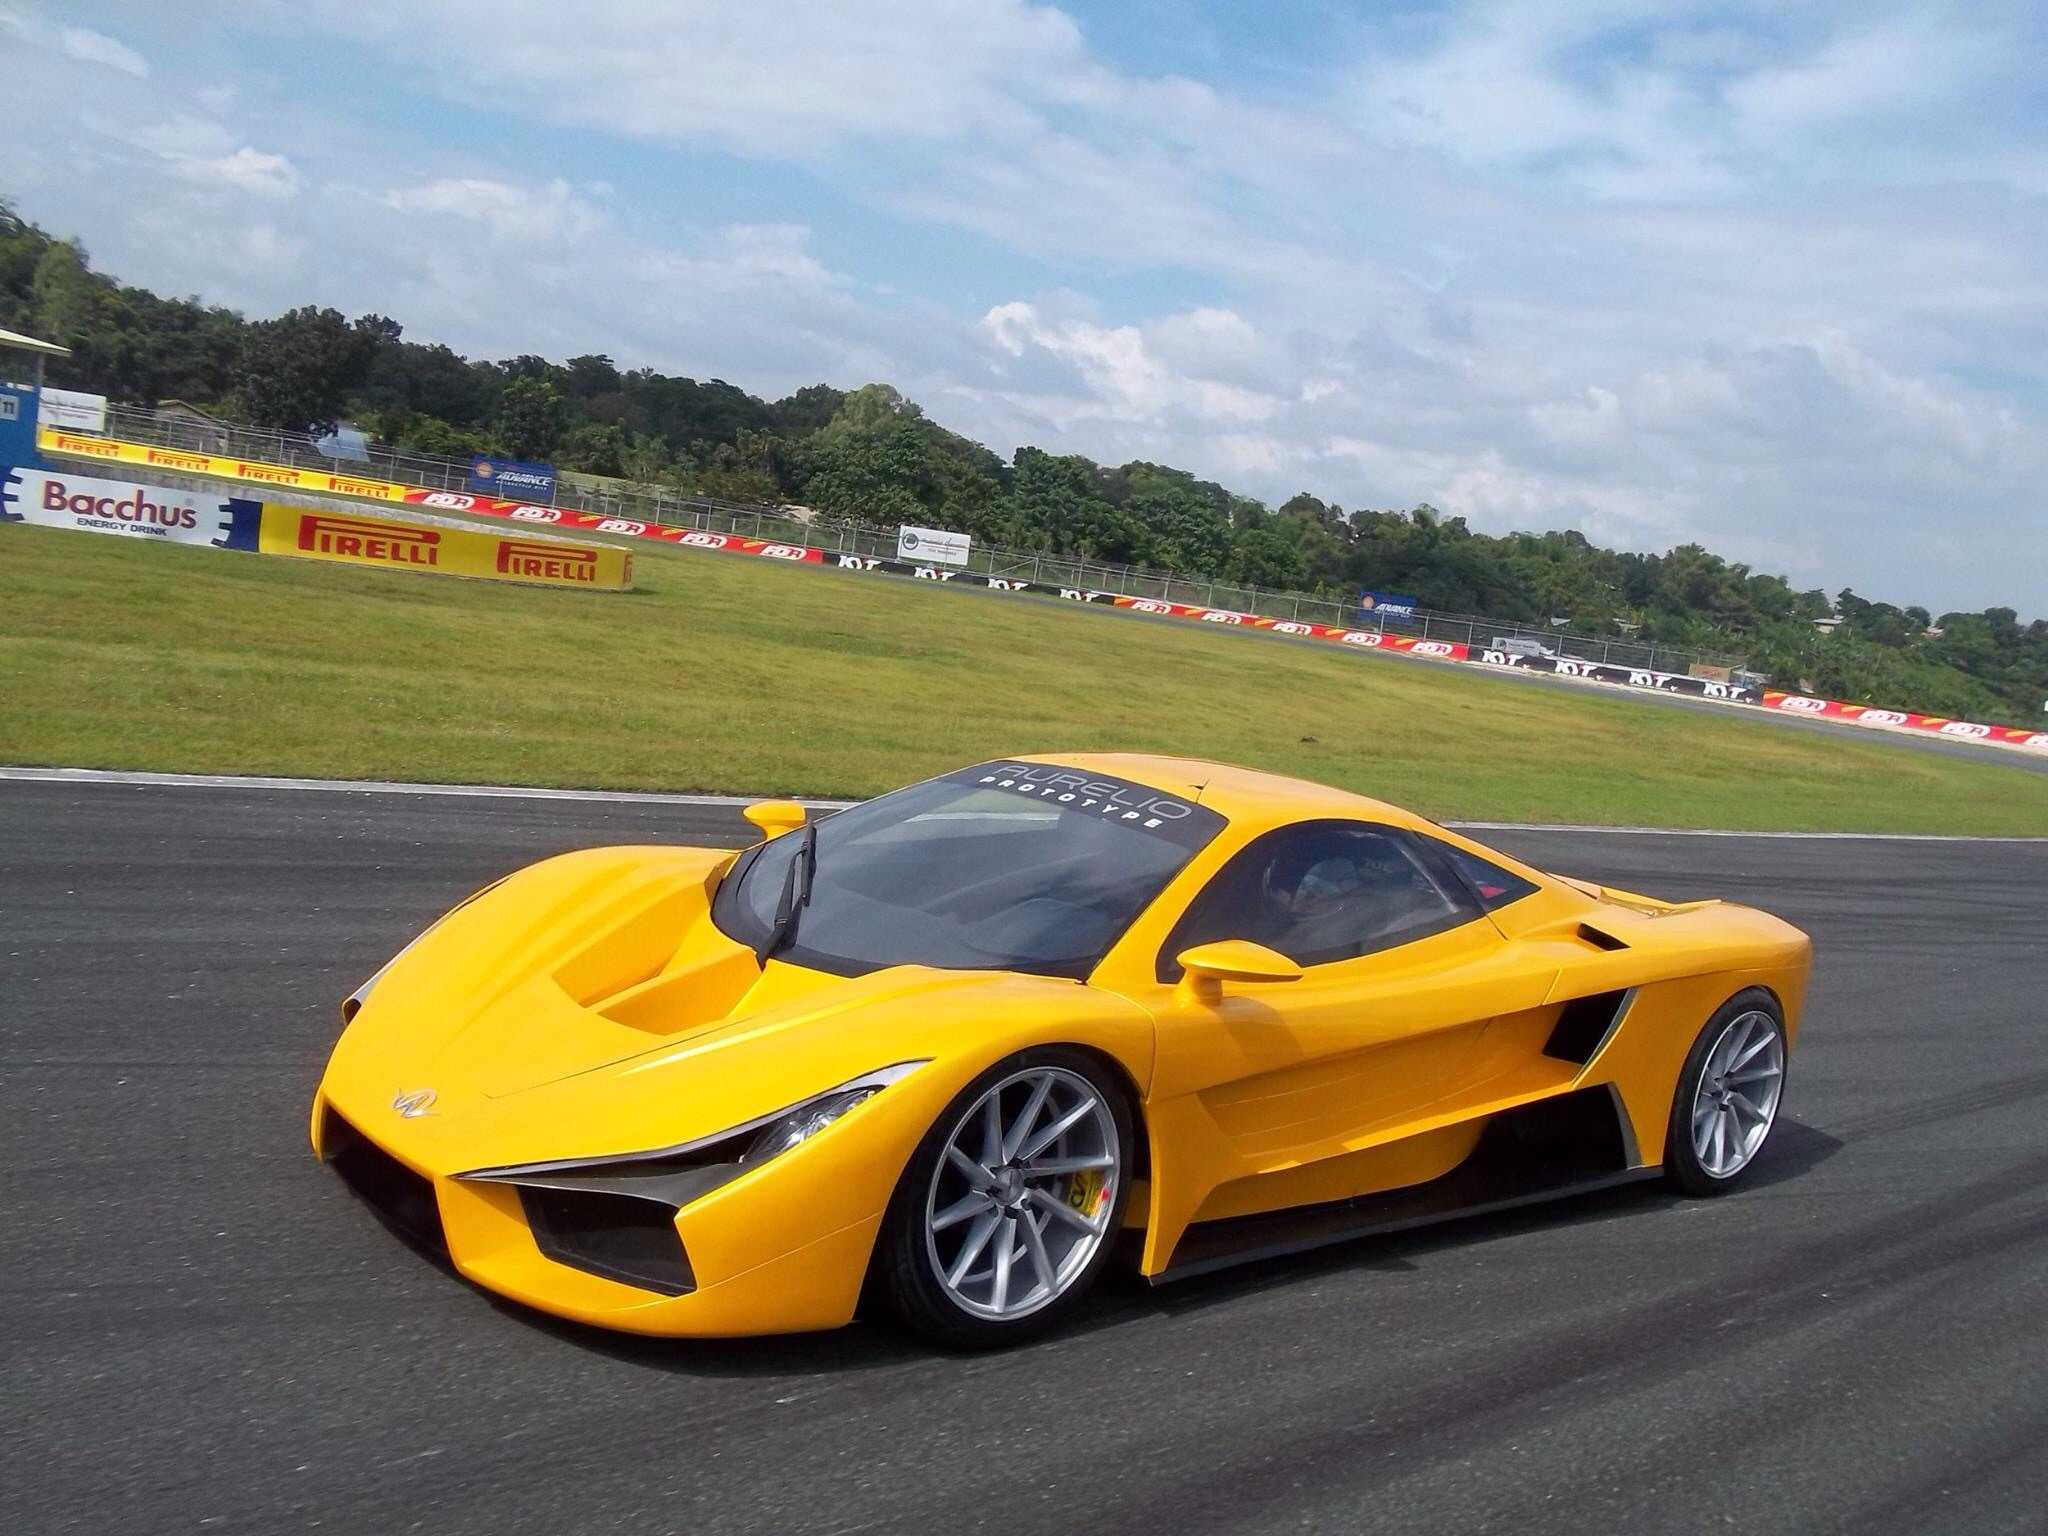 The very first Filipino Supercar, The Factor Aurelio